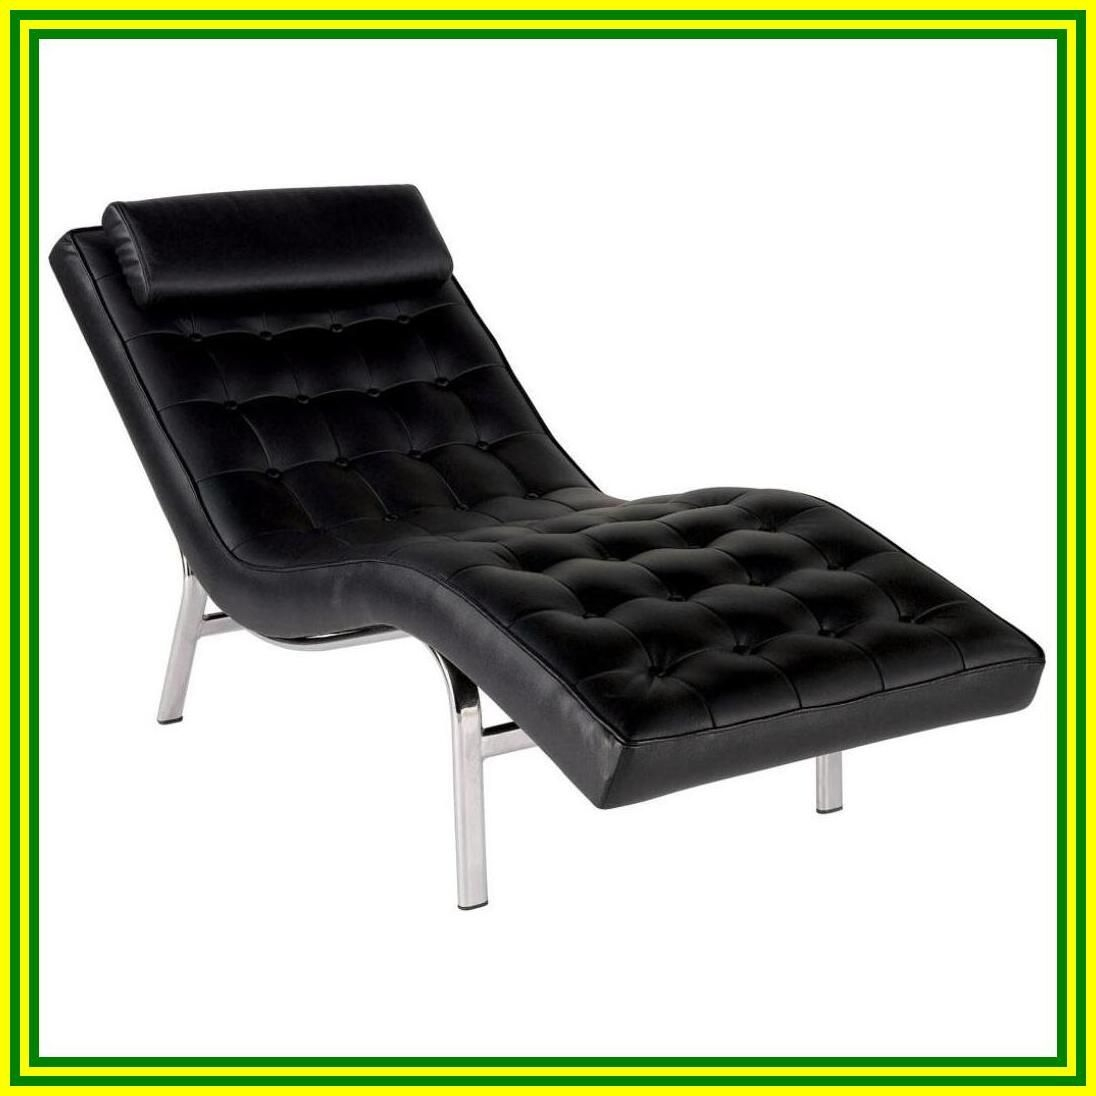 Leather Chaise Lounge Chairs   Ideas On Foter